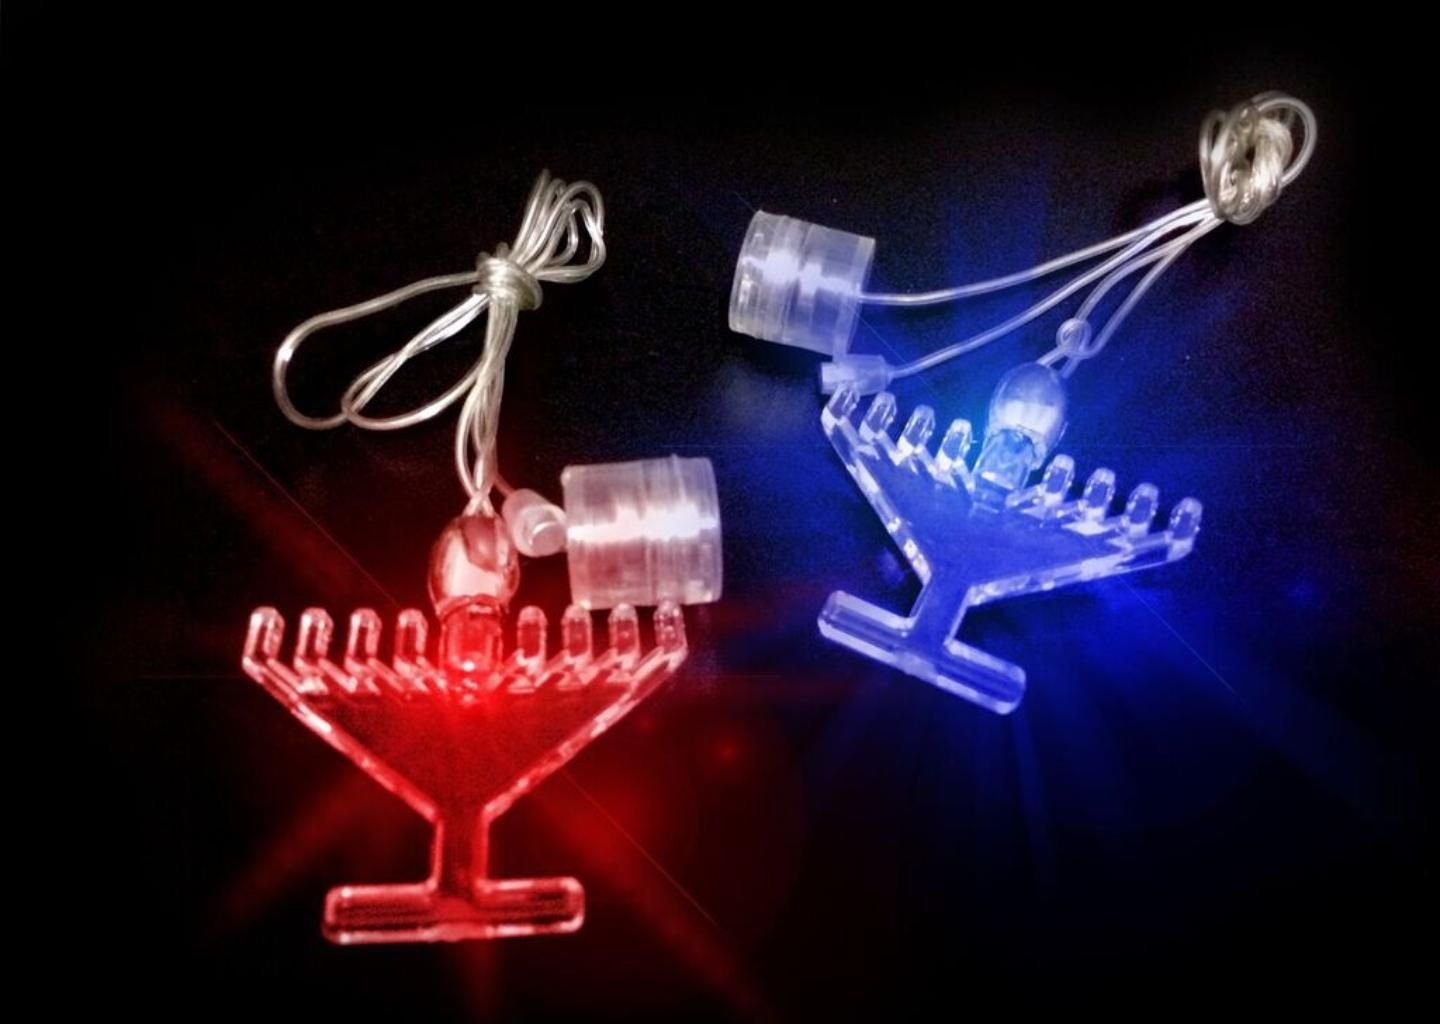 50 Hanukkah Glow in the Dark LED Menorah Necklace & Light Up Decoration for Chanukah Party by JewishInnovations.com